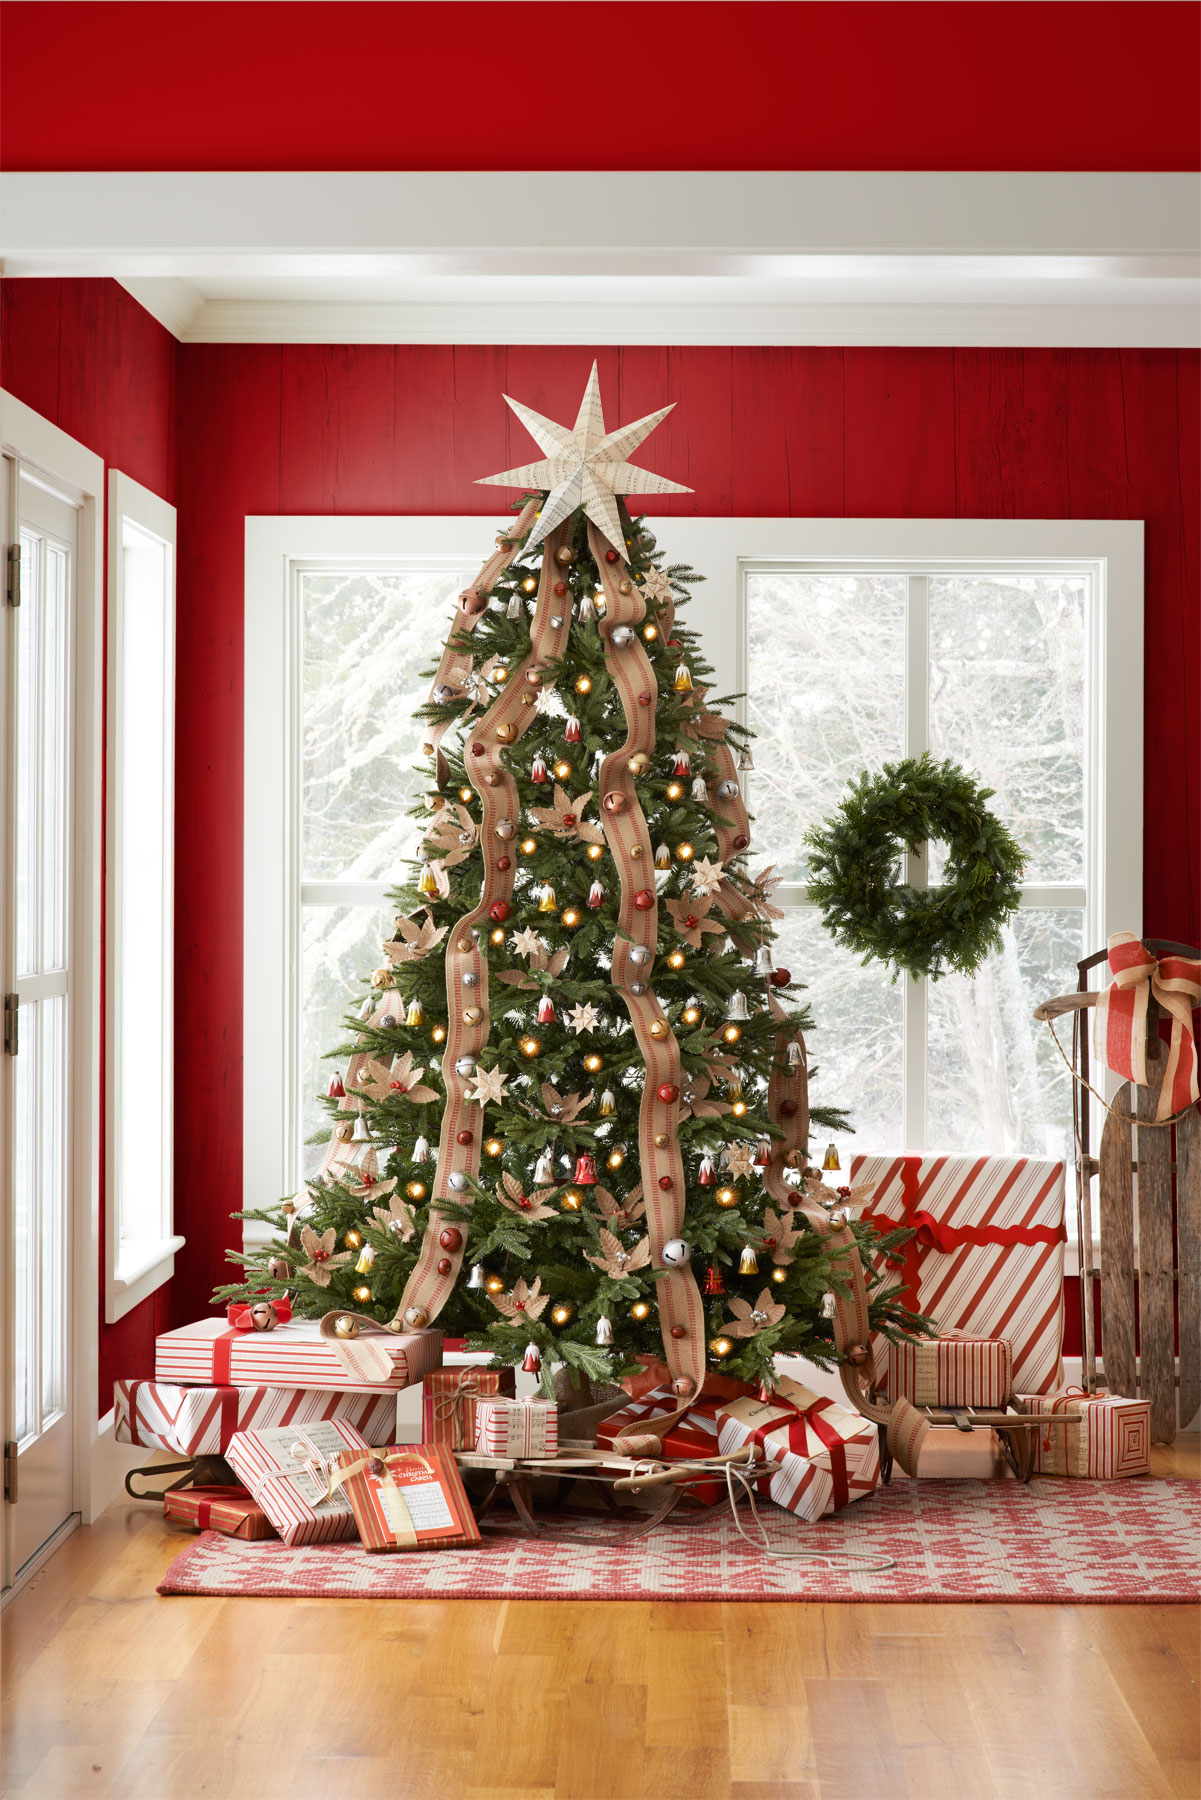 Uncategorized Photo Of Decorated Christmas Tree 60 best christmas tree decorating ideas how to decorate a tree